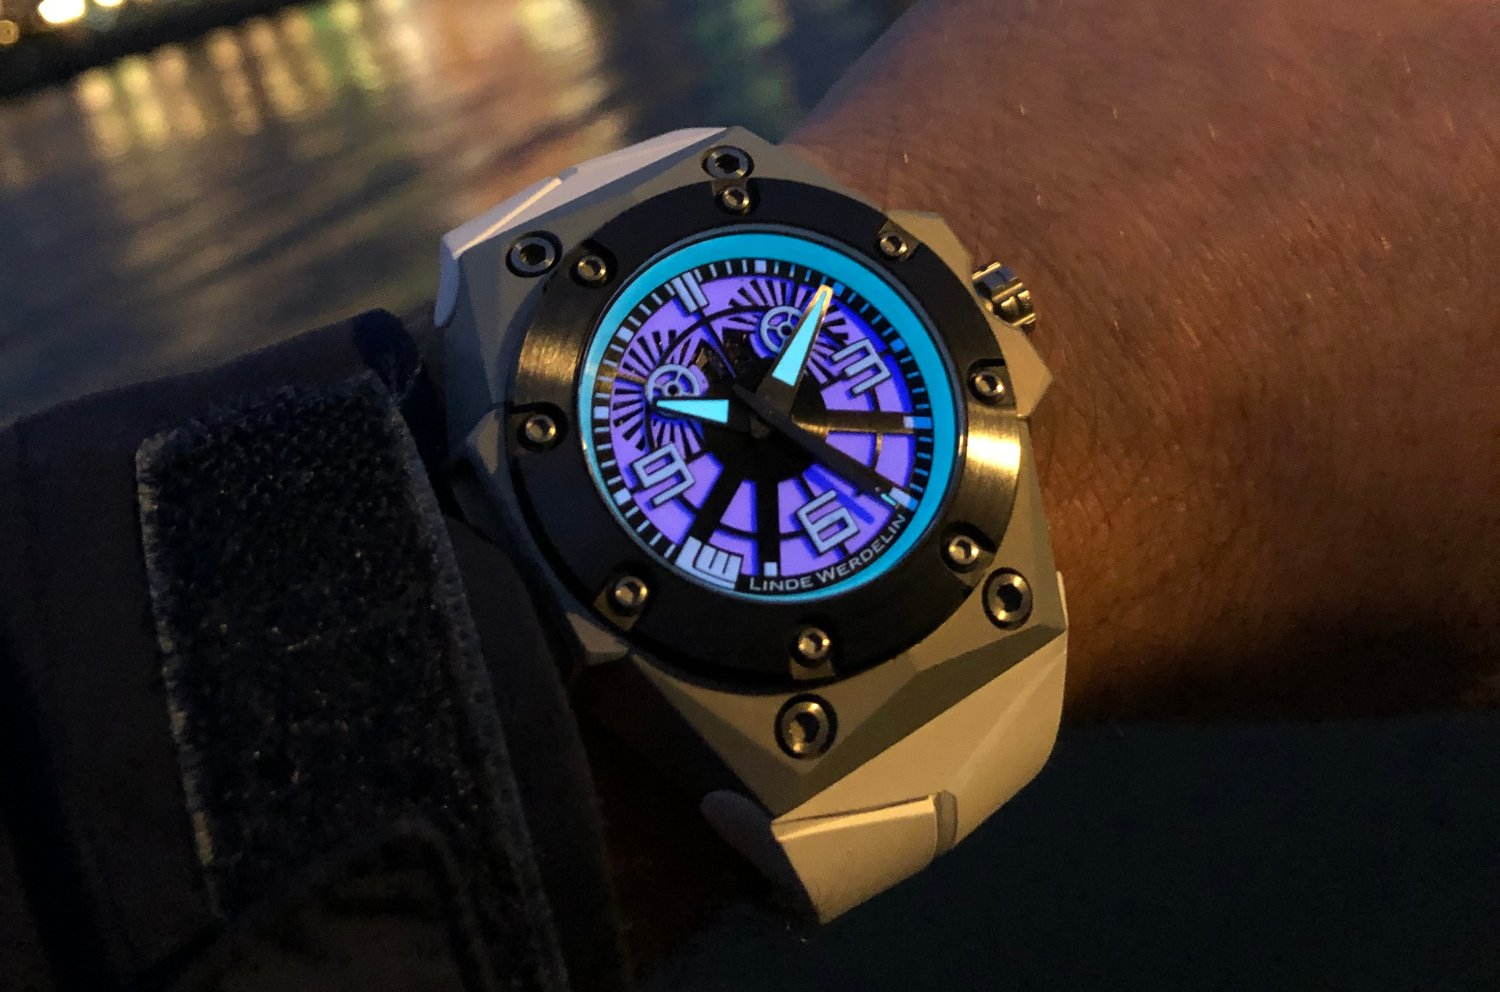 Linde_Werdelin_oktopus_blue_sea_4_-_Europa_Star_watch_magazine_2020